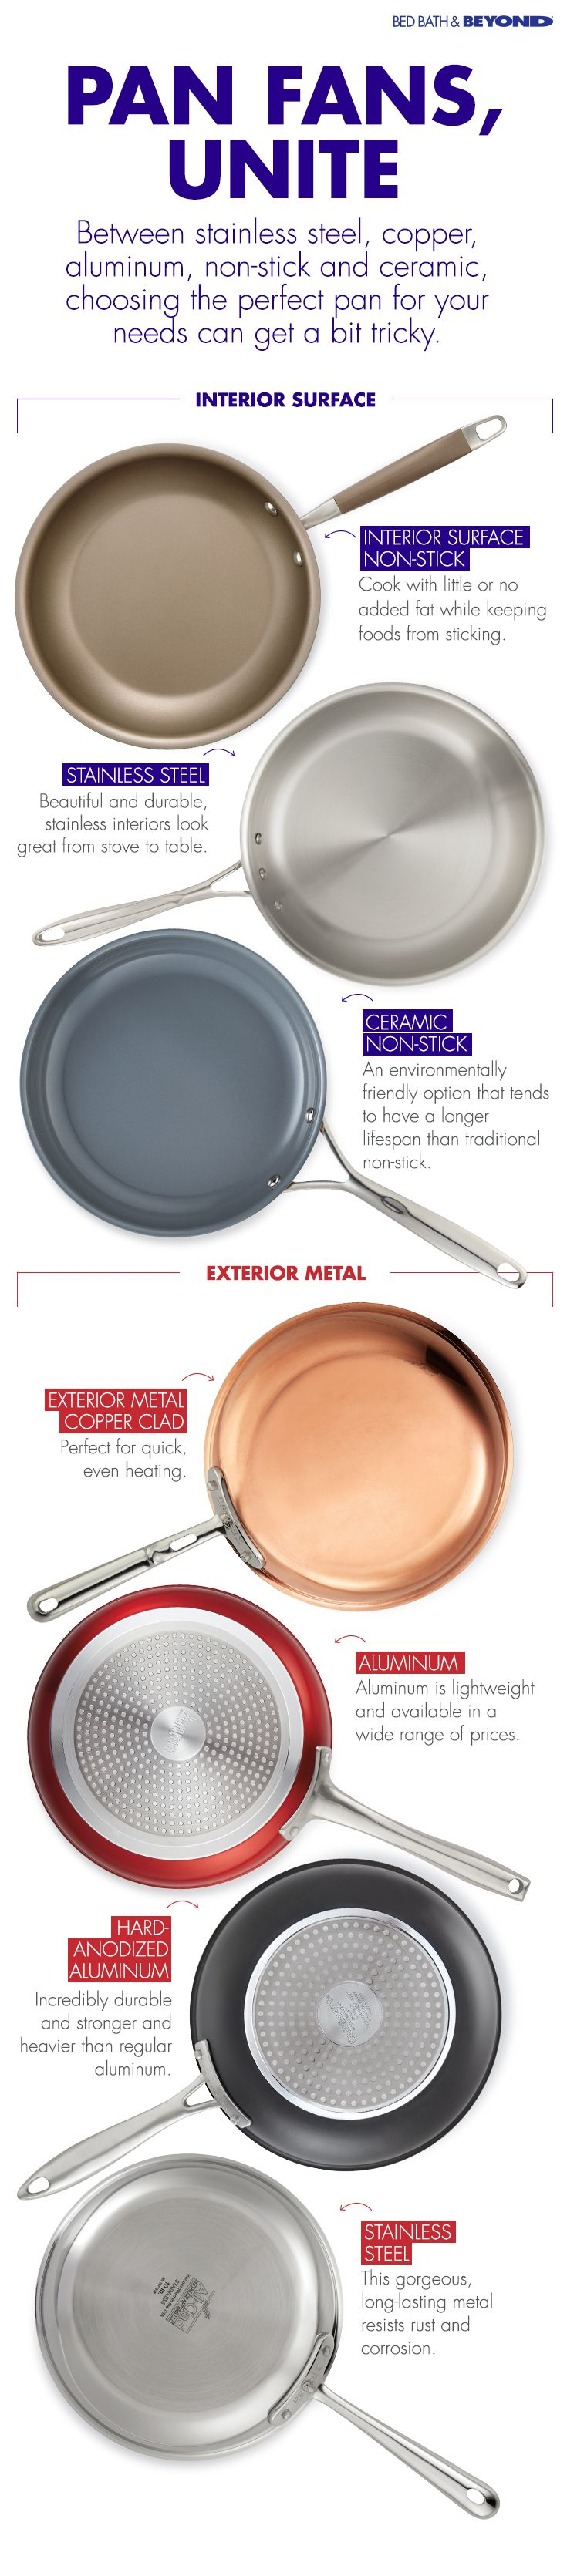 Need some help navigating the world of  kitchen cookware? Here's a quick rundown of  some of the benefits stainless steel, copper,  aluminum, non-stick and ceramic pots  have to offer.: